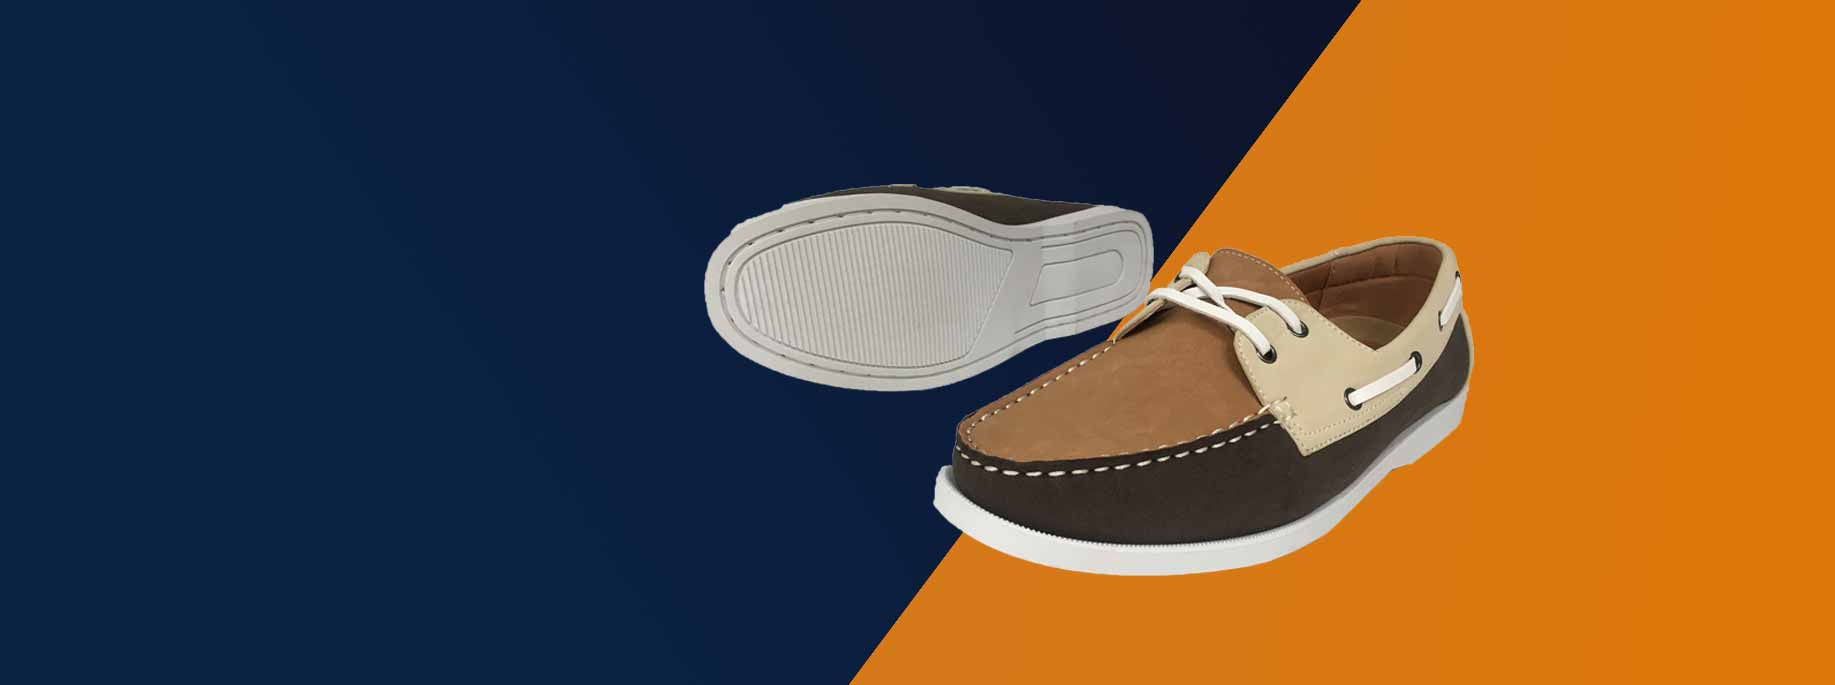 buck-leather-loafer-shoes-home1-slider6-fix